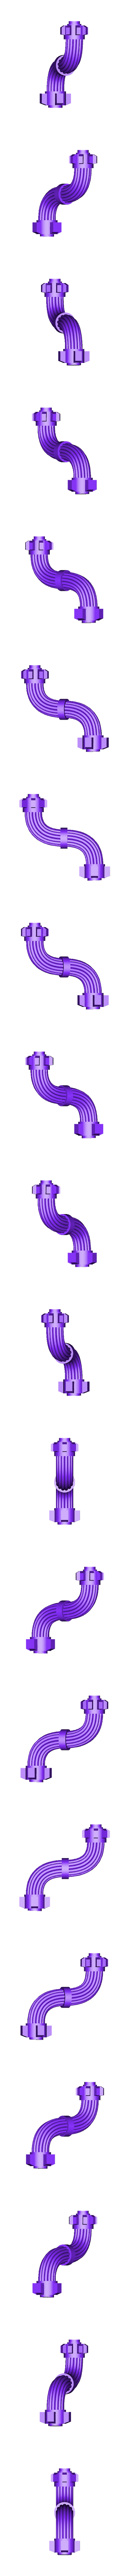 HWT_Lascannon_wires.stl Download free STL file Lascannon (Heavy weapon team) • Model to 3D print, Solutionlesn